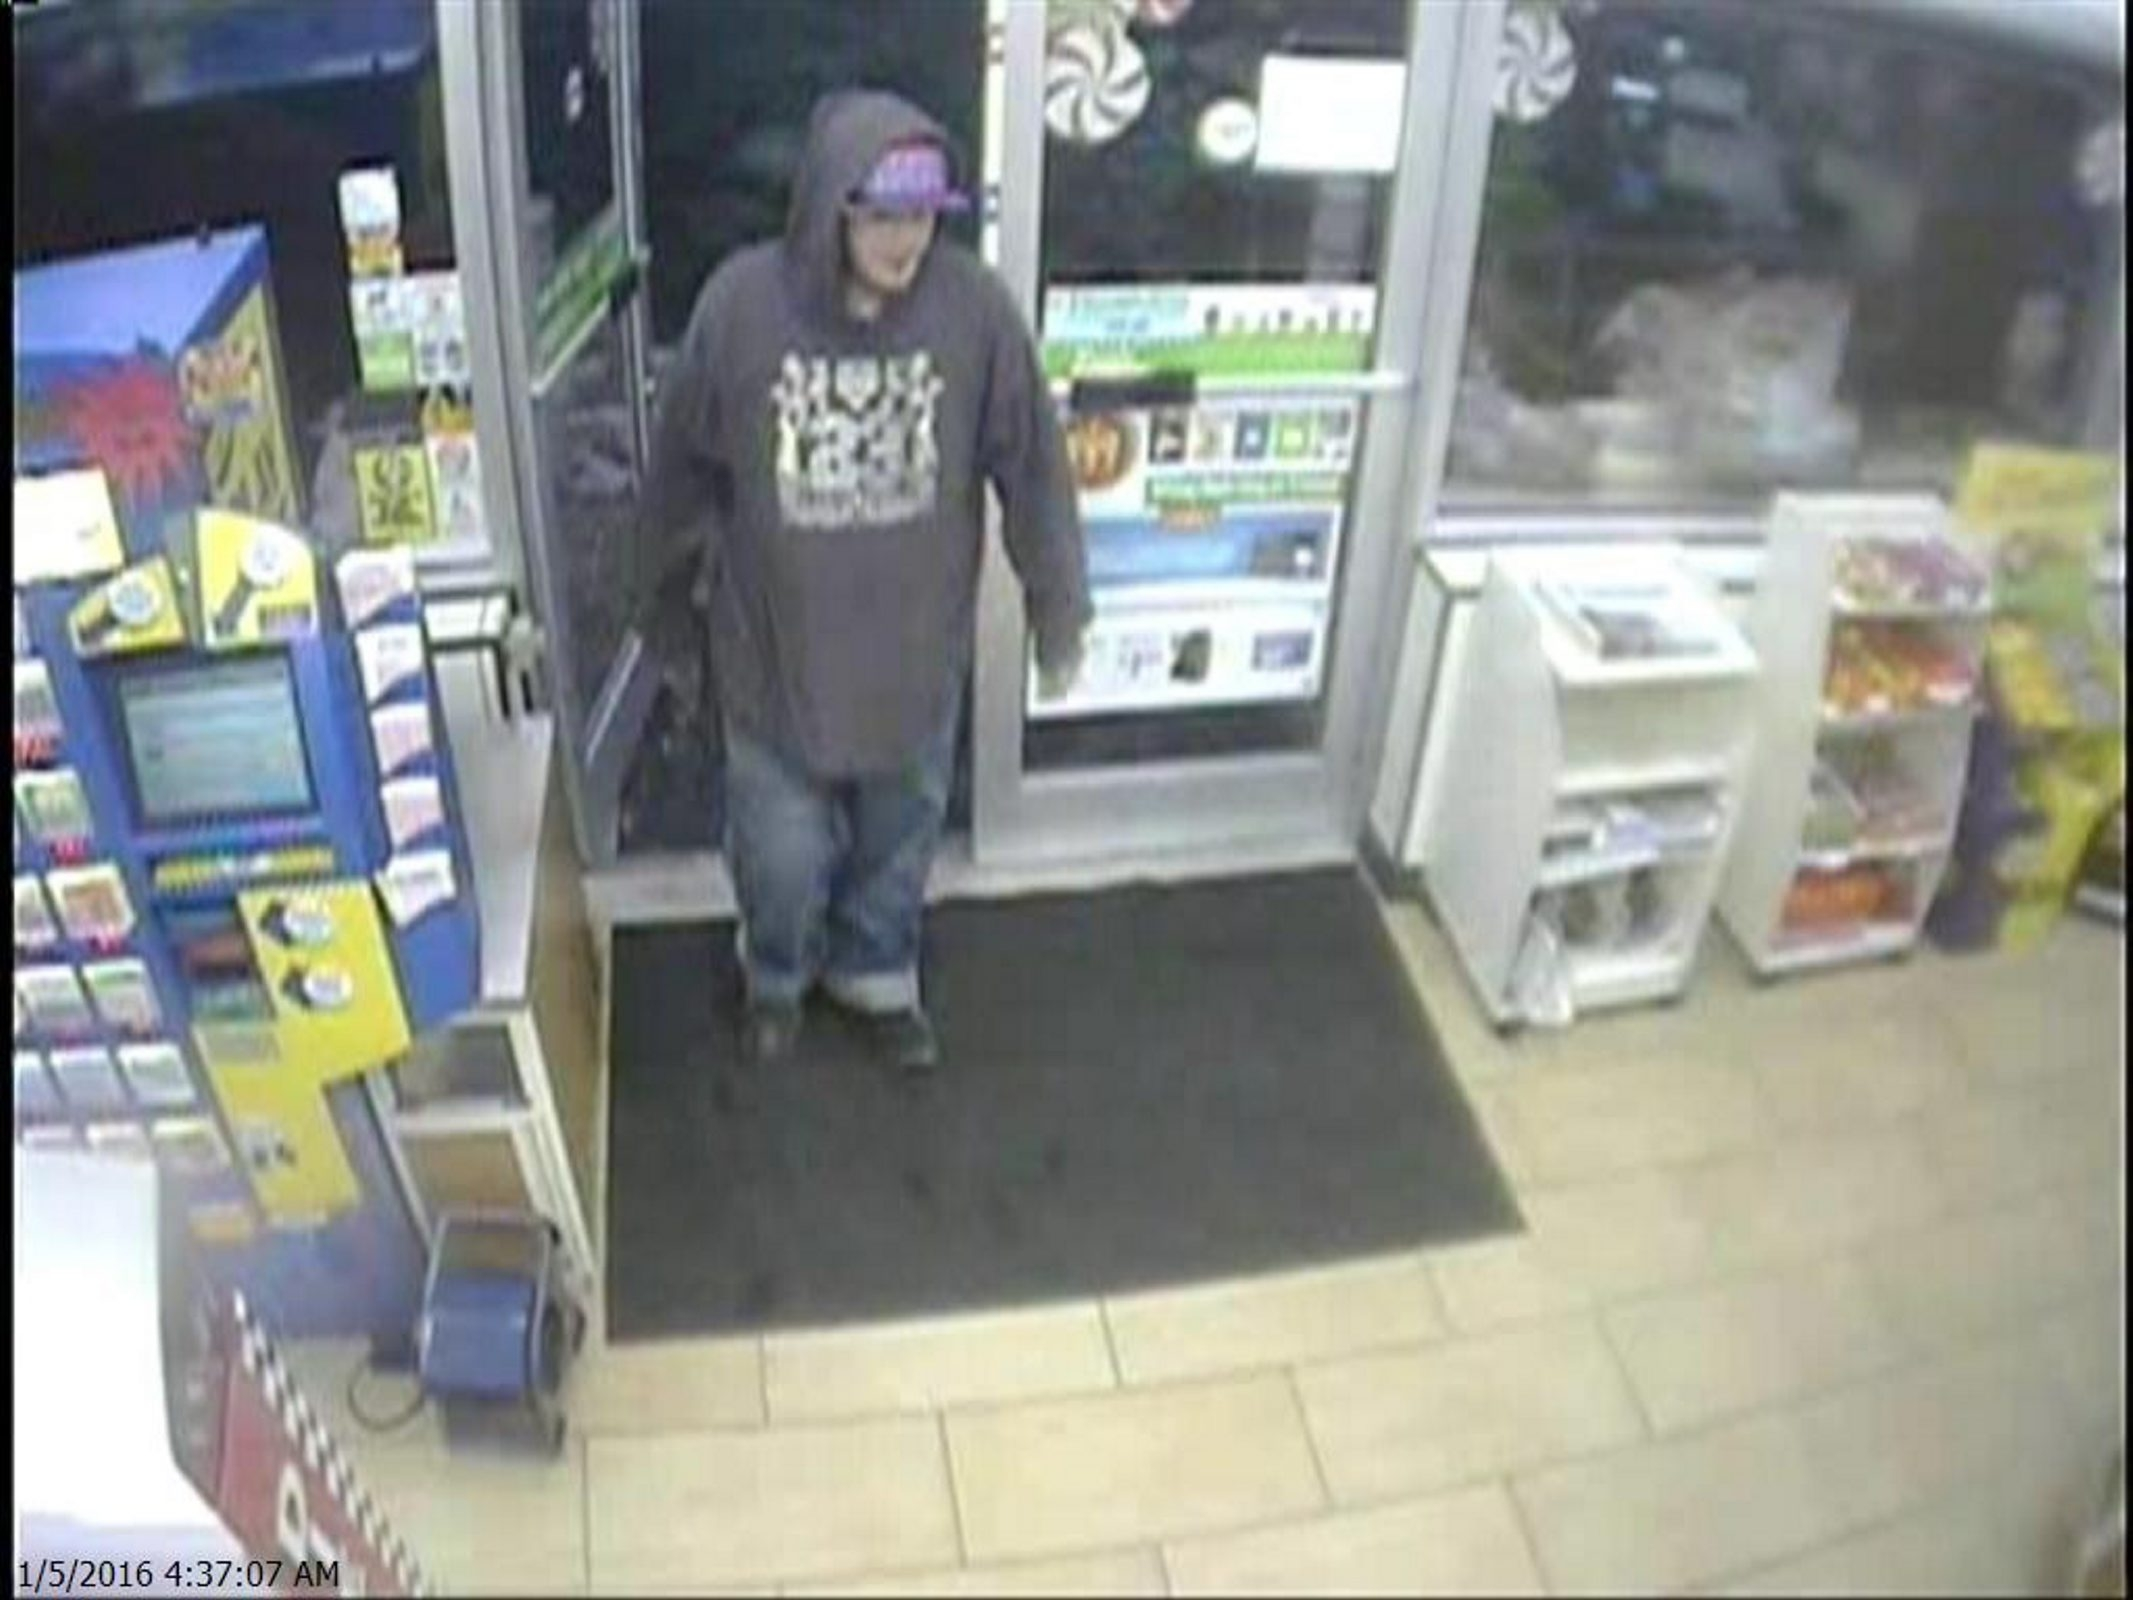 Photo of holdup suspect from surveillance camara provided by Niagara County Sheriff's Office.